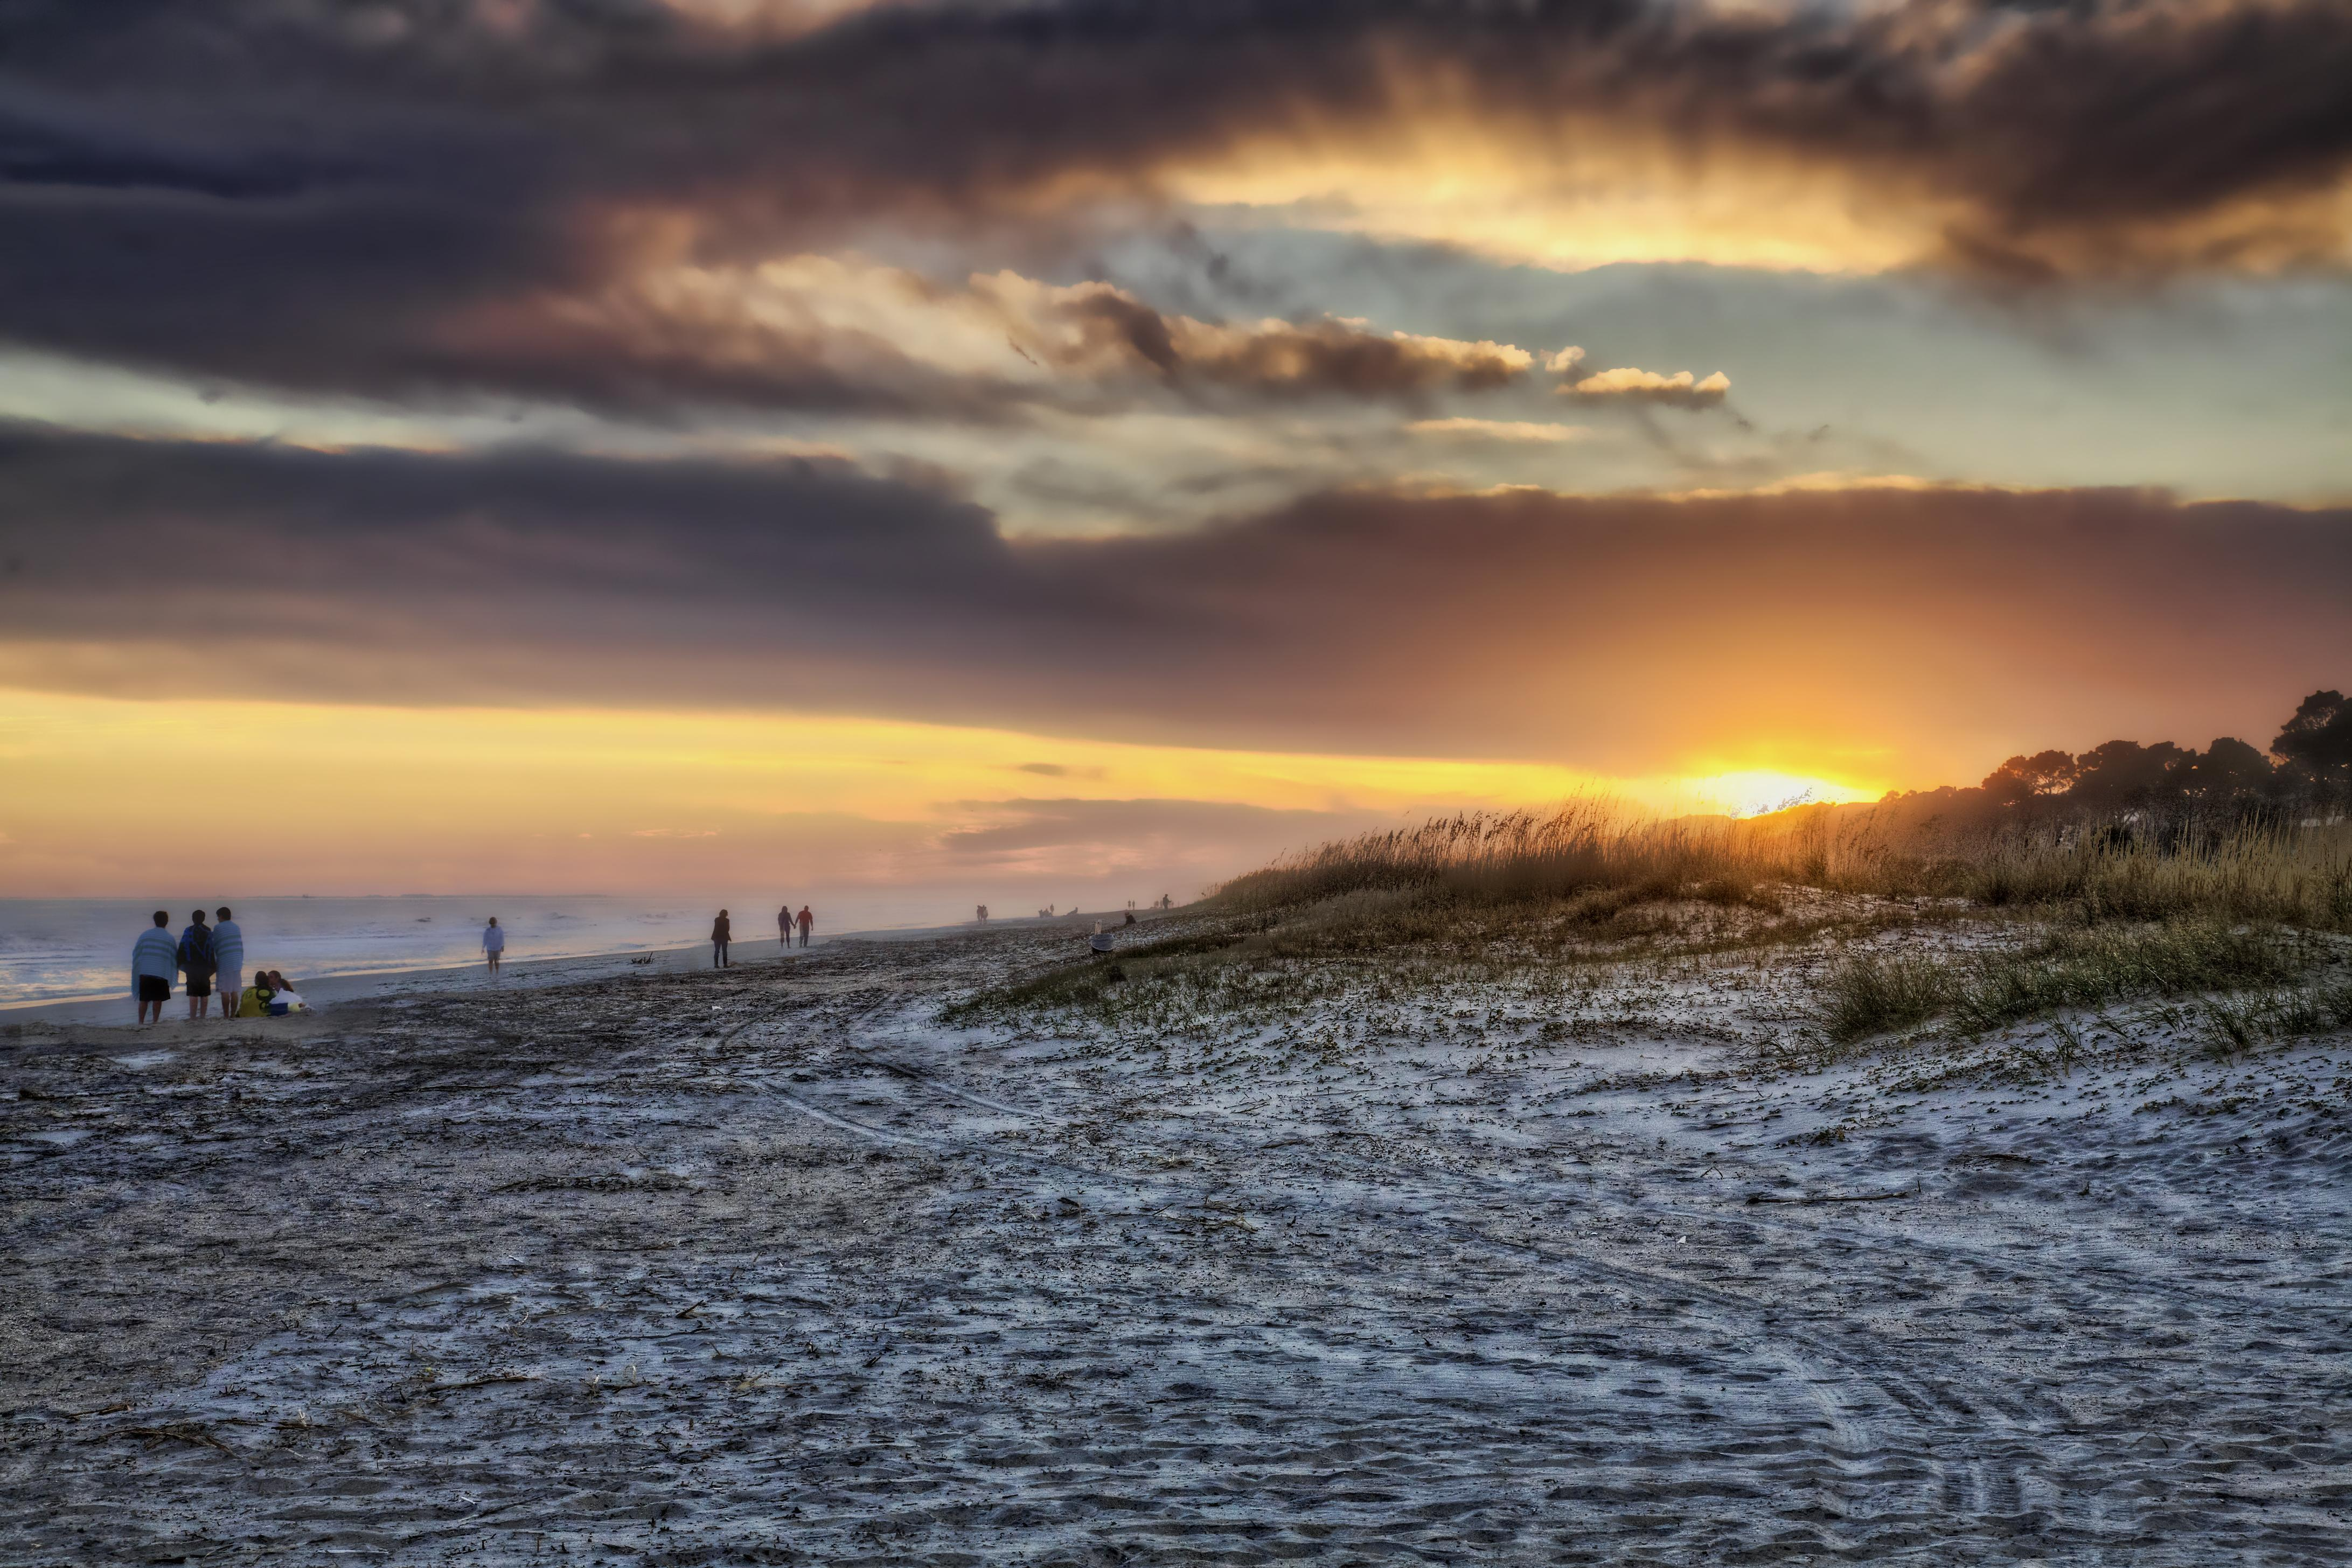 Gorgeous sunsets await! Sea Pines Beach is less than 2 miles away.